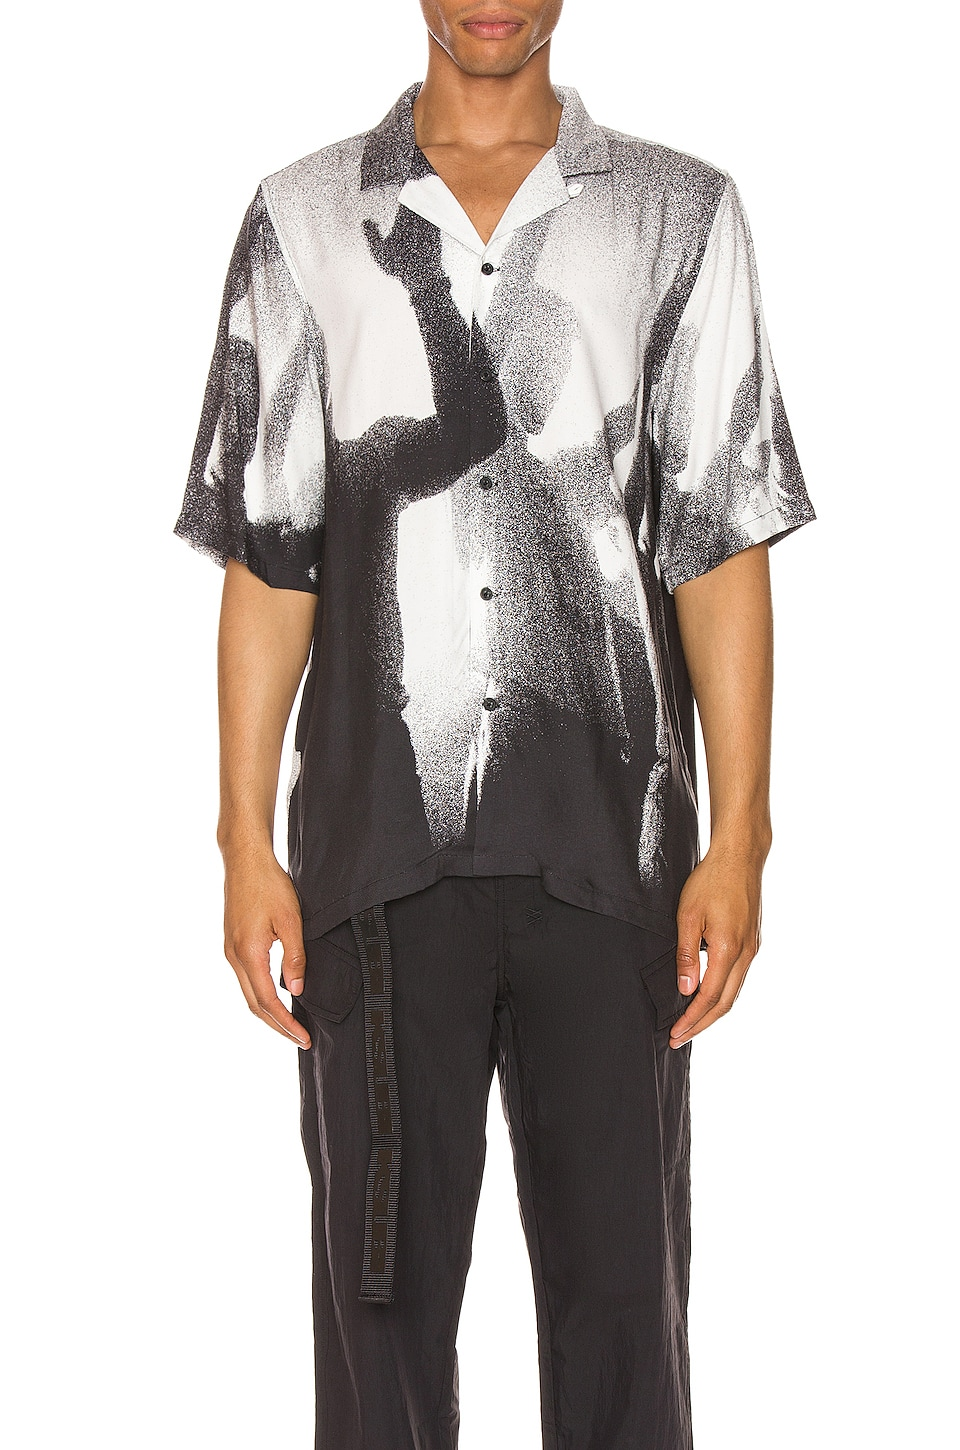 Ksubi Dancers Resort Shirt in Black